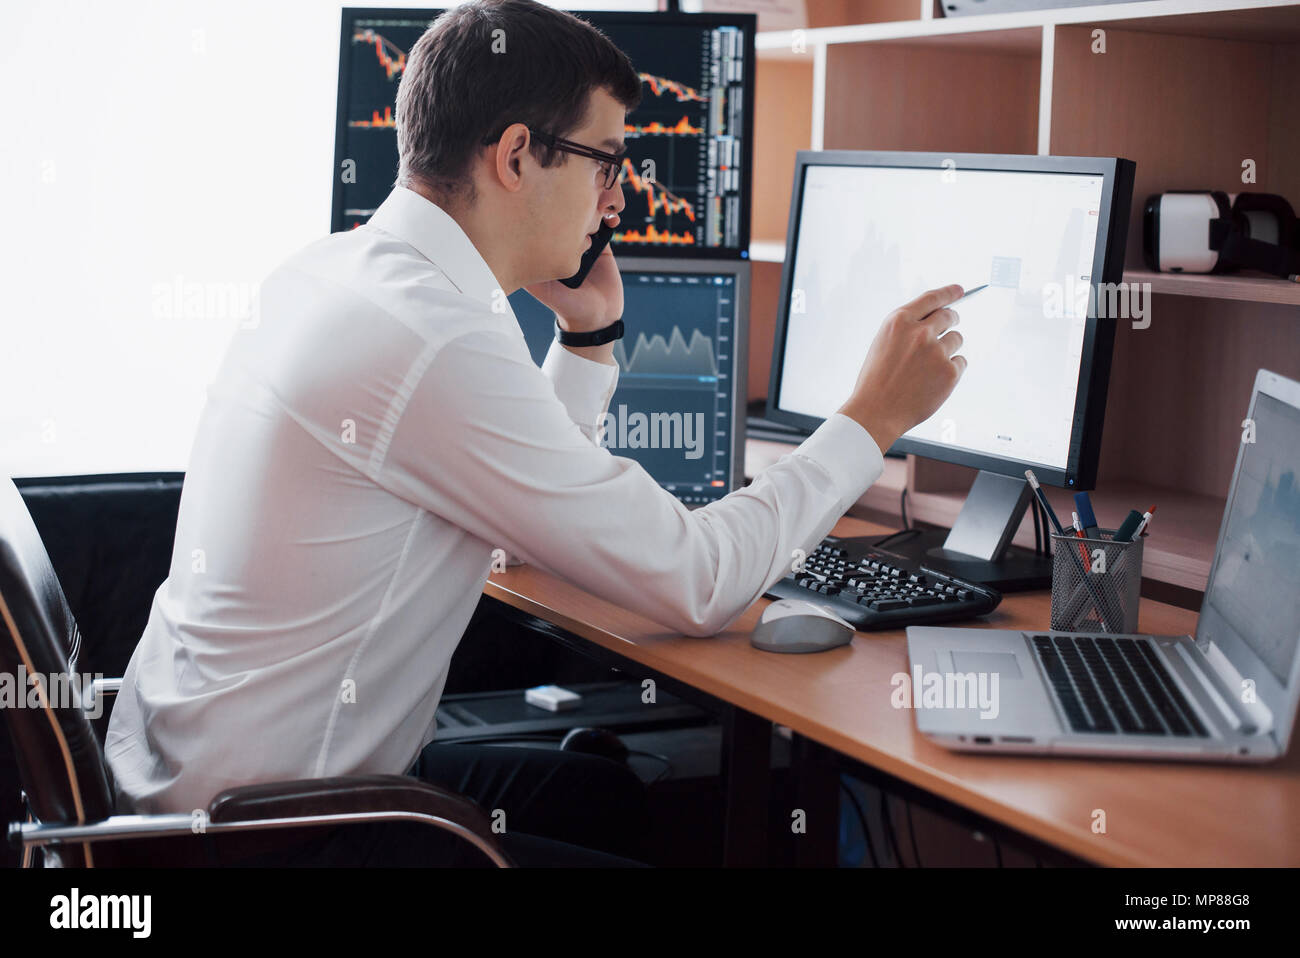 Stockbroker in shirt is working in a monitoring room with display screens. Stock Exchange Trading Forex Finance Graphic Concept. Businessmen trading stocks online - Stock Image